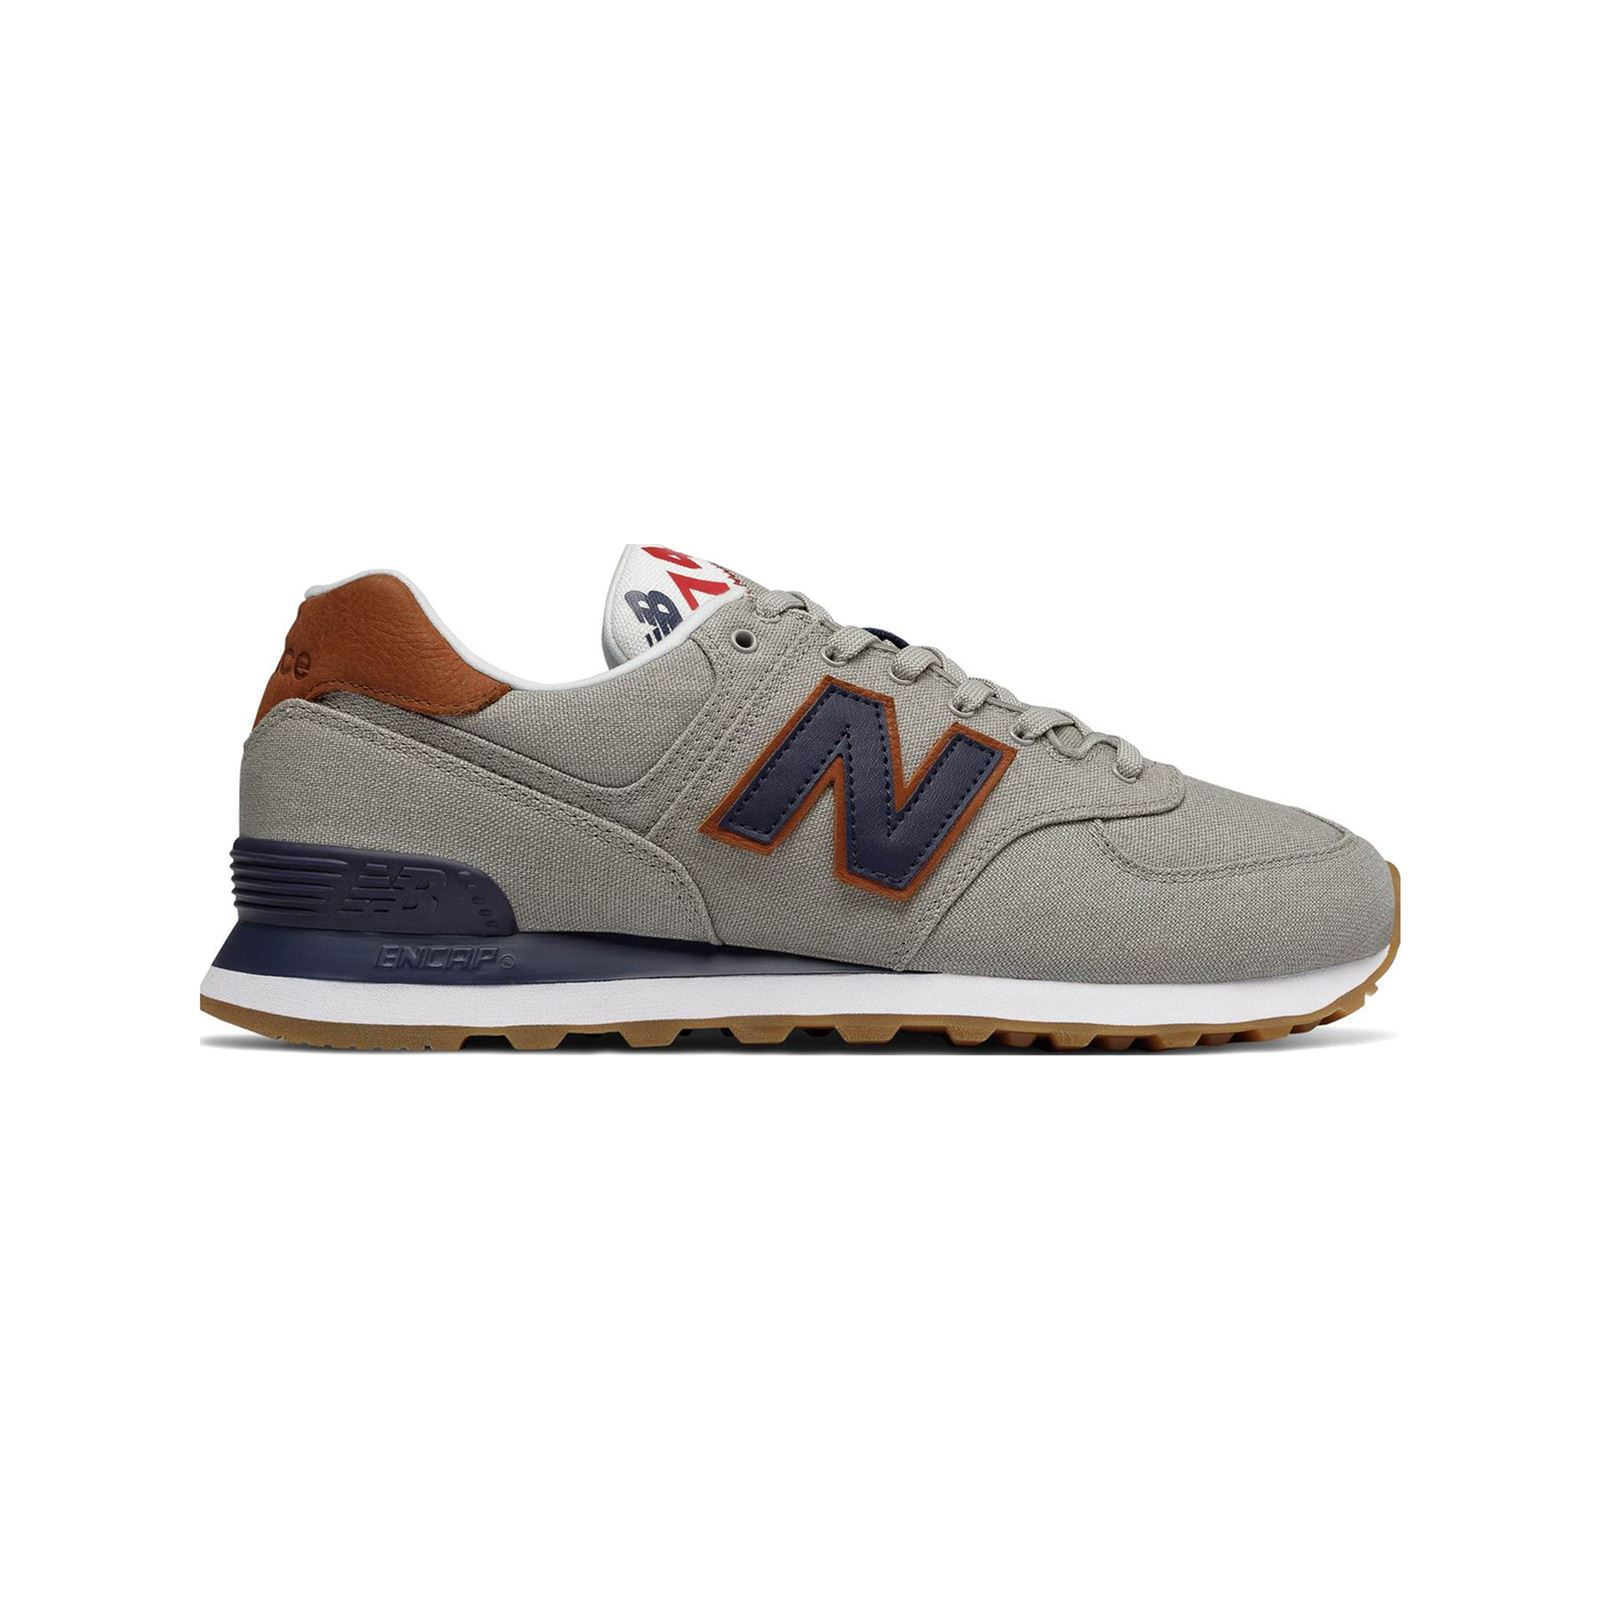 New Balance ML574 Scarpe da tennis sneakers pietra